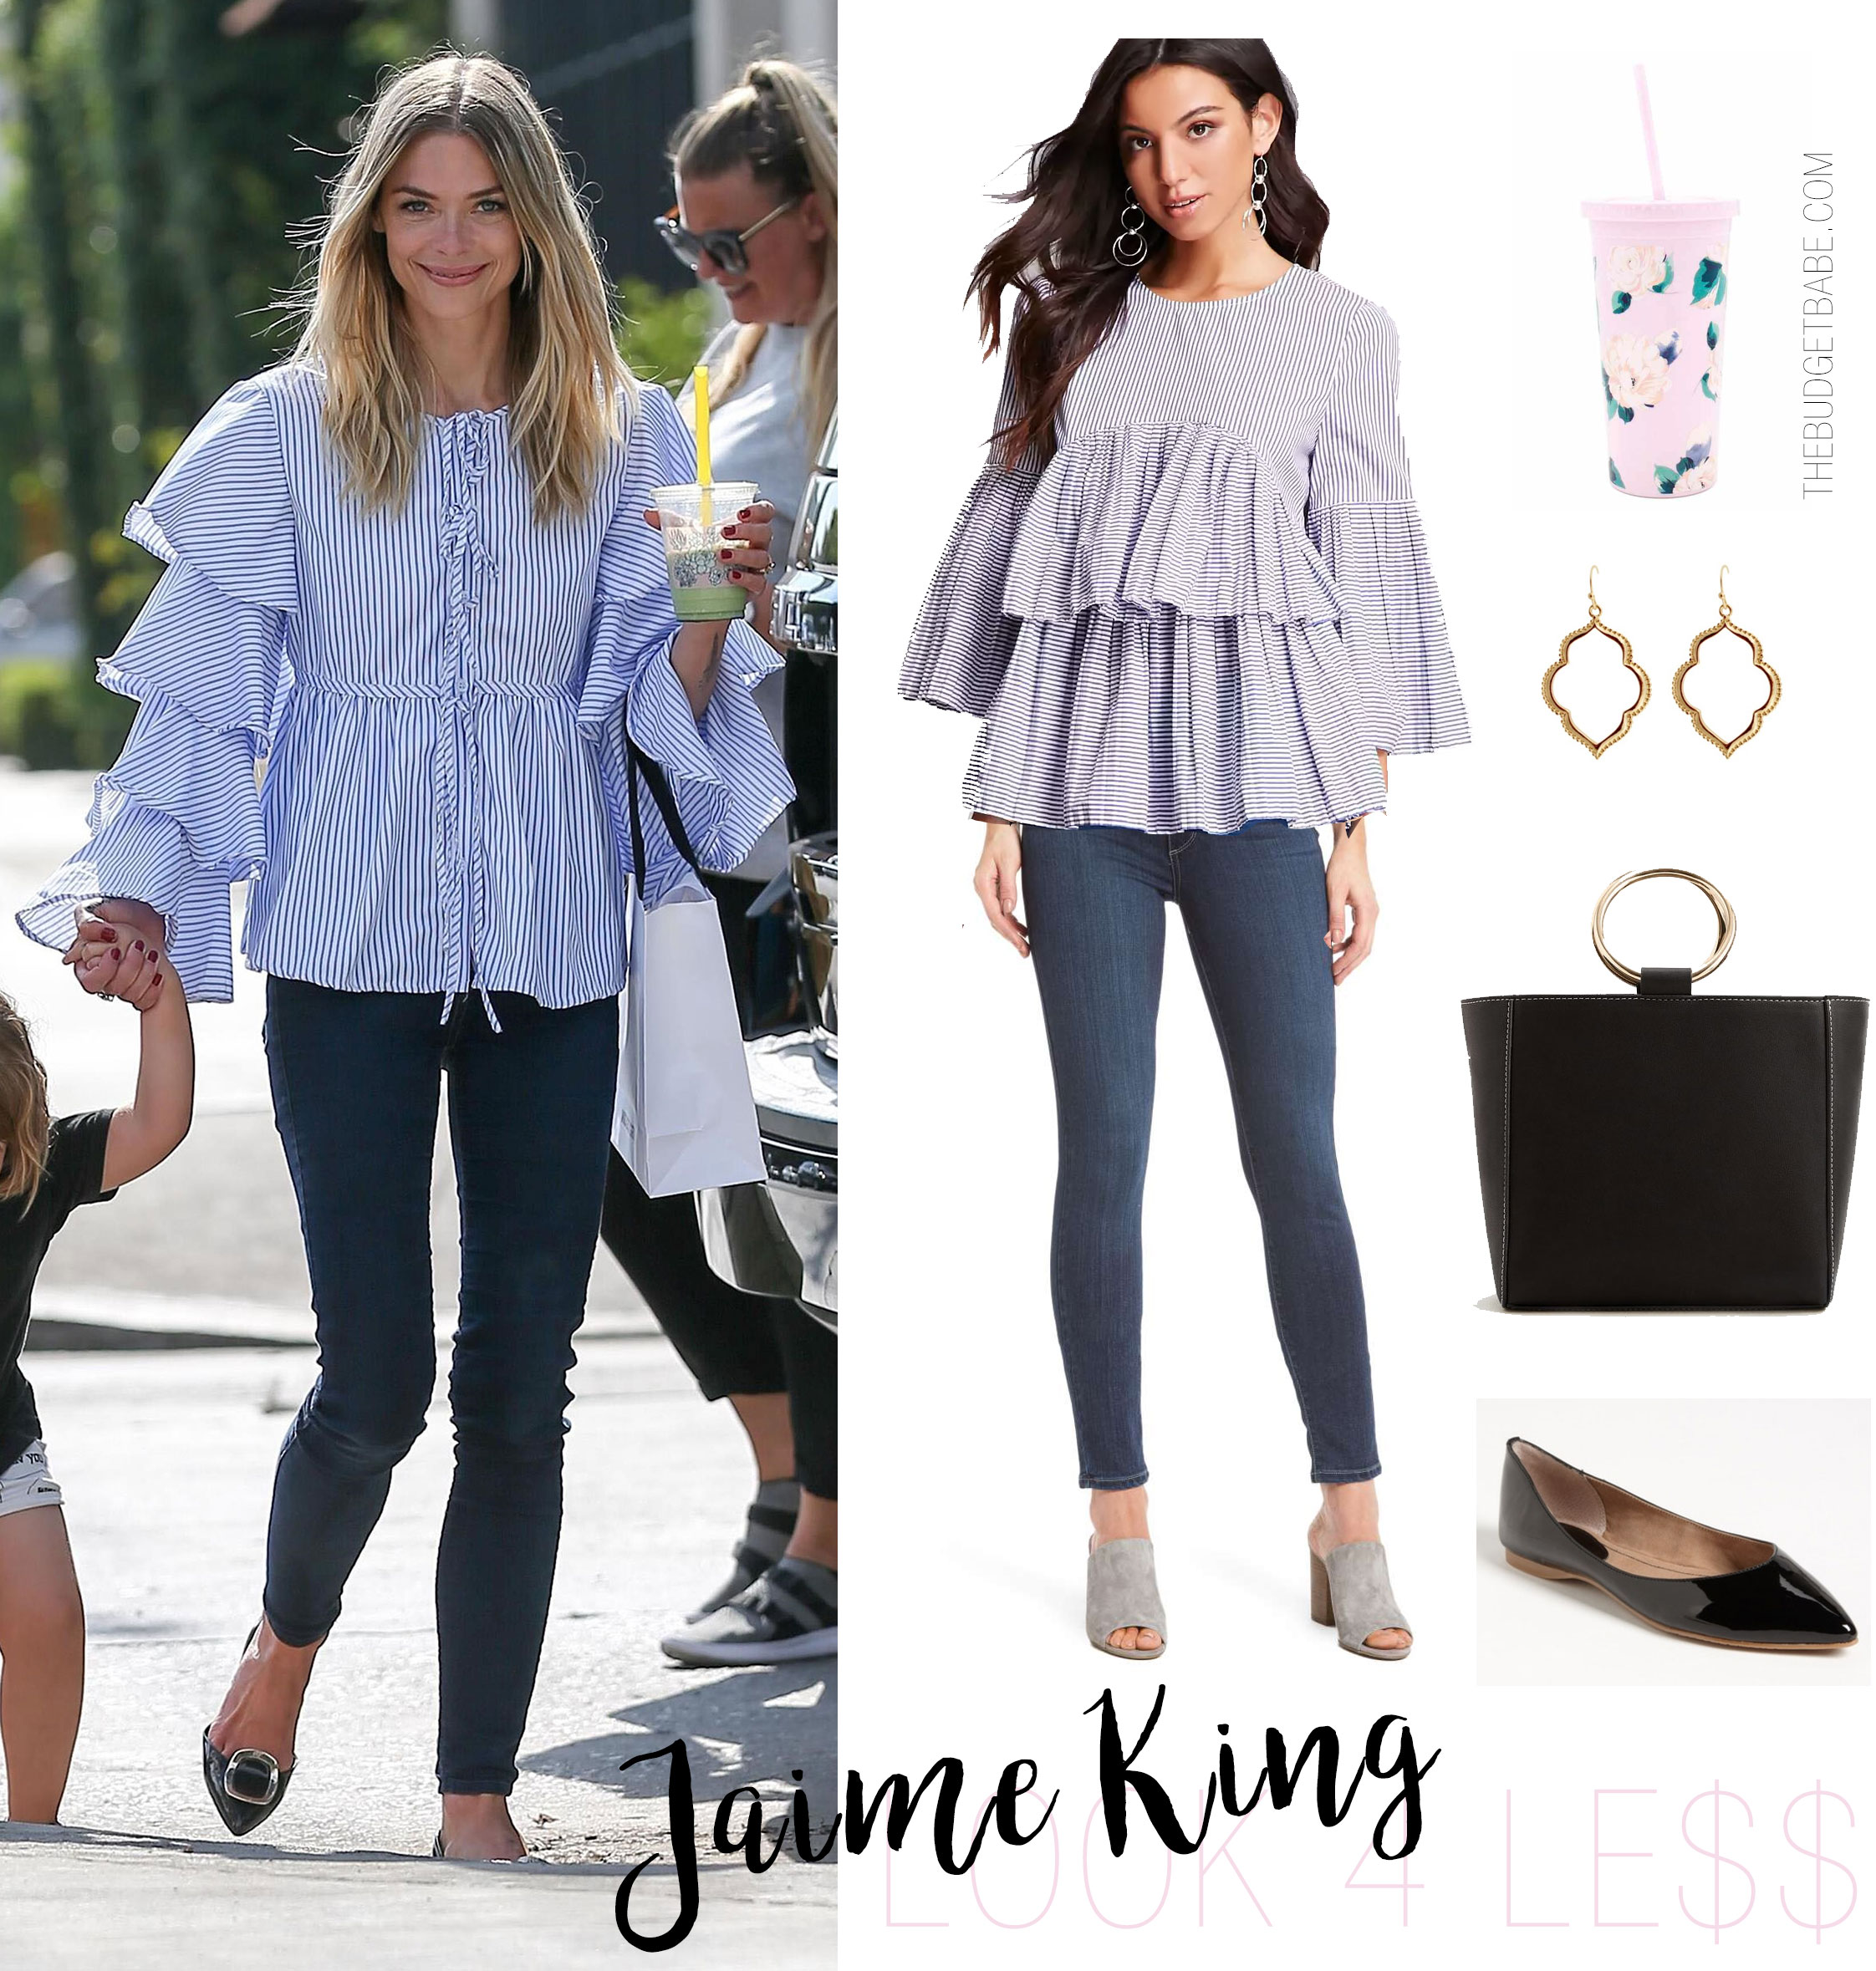 Jaime King wears a ruffle shirt and skinny jeans while shopping.